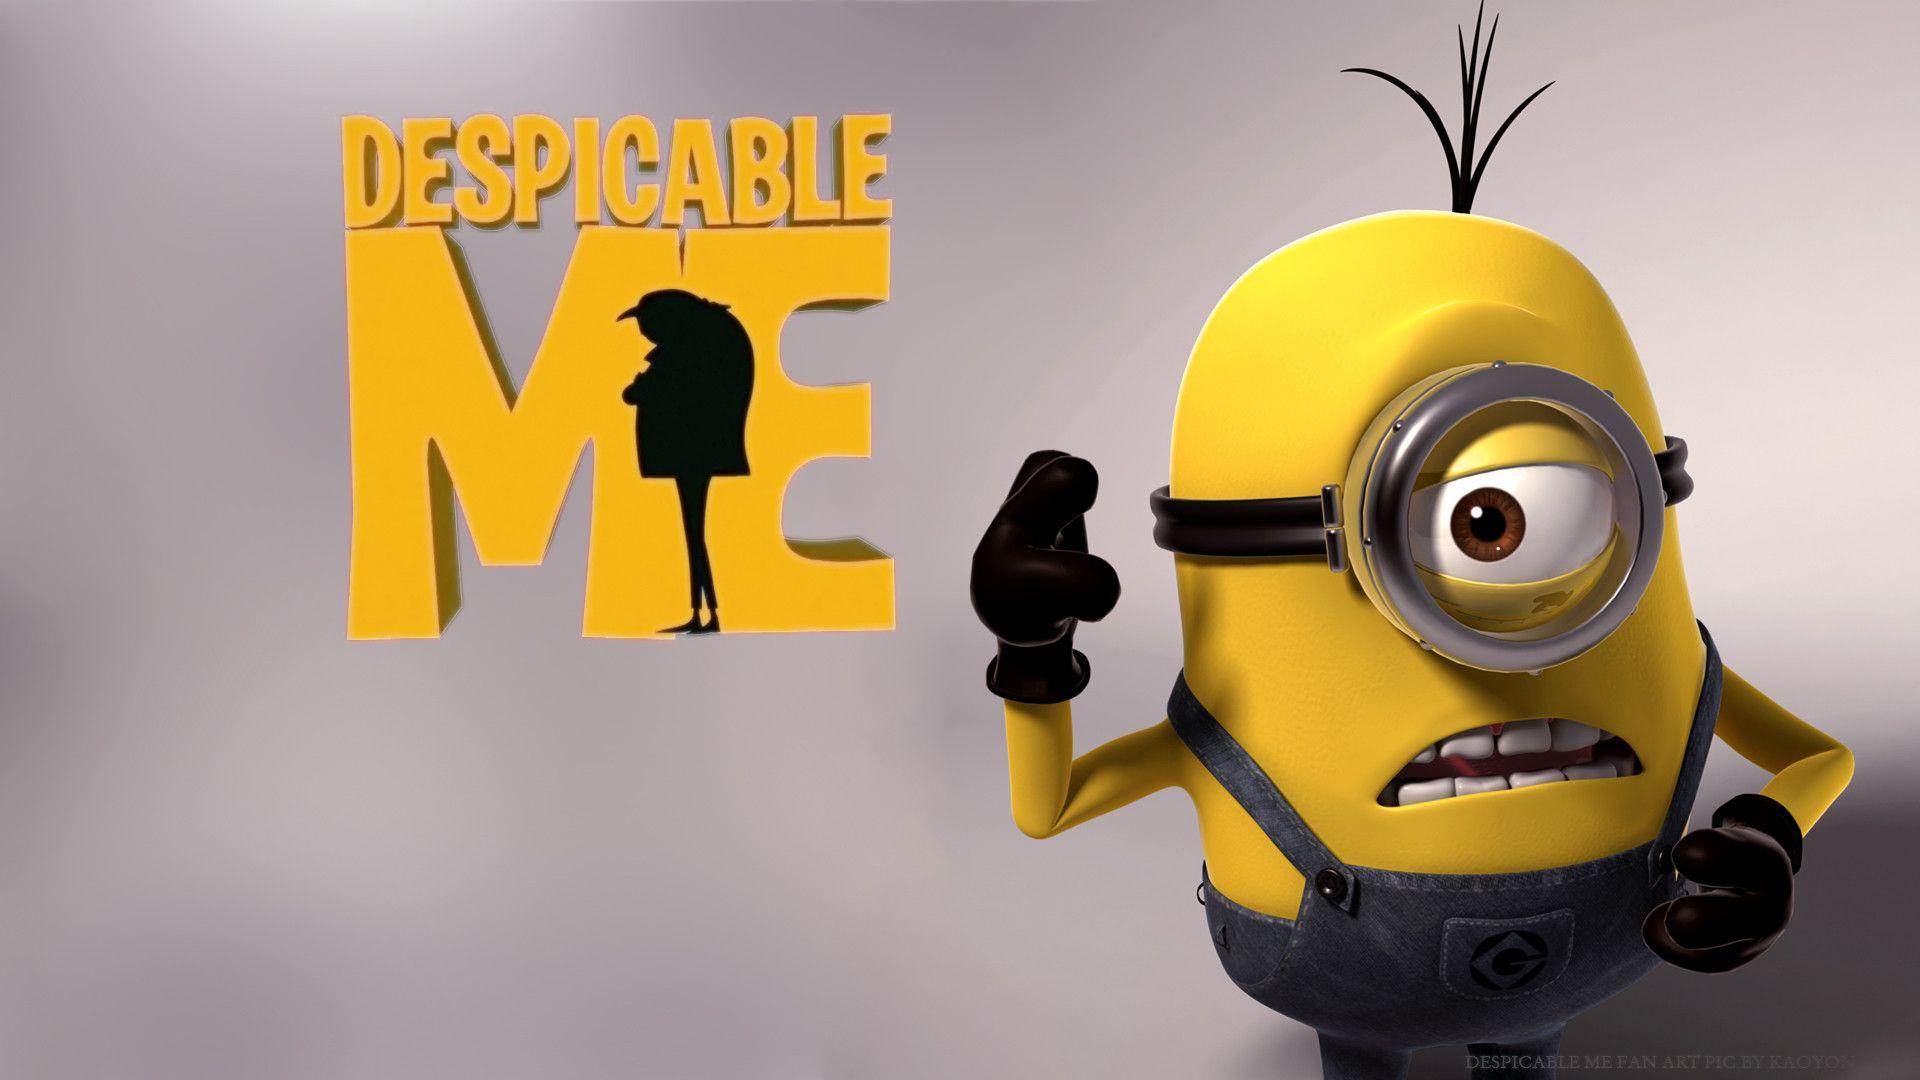 despicable me minions wallpapers - photo #21